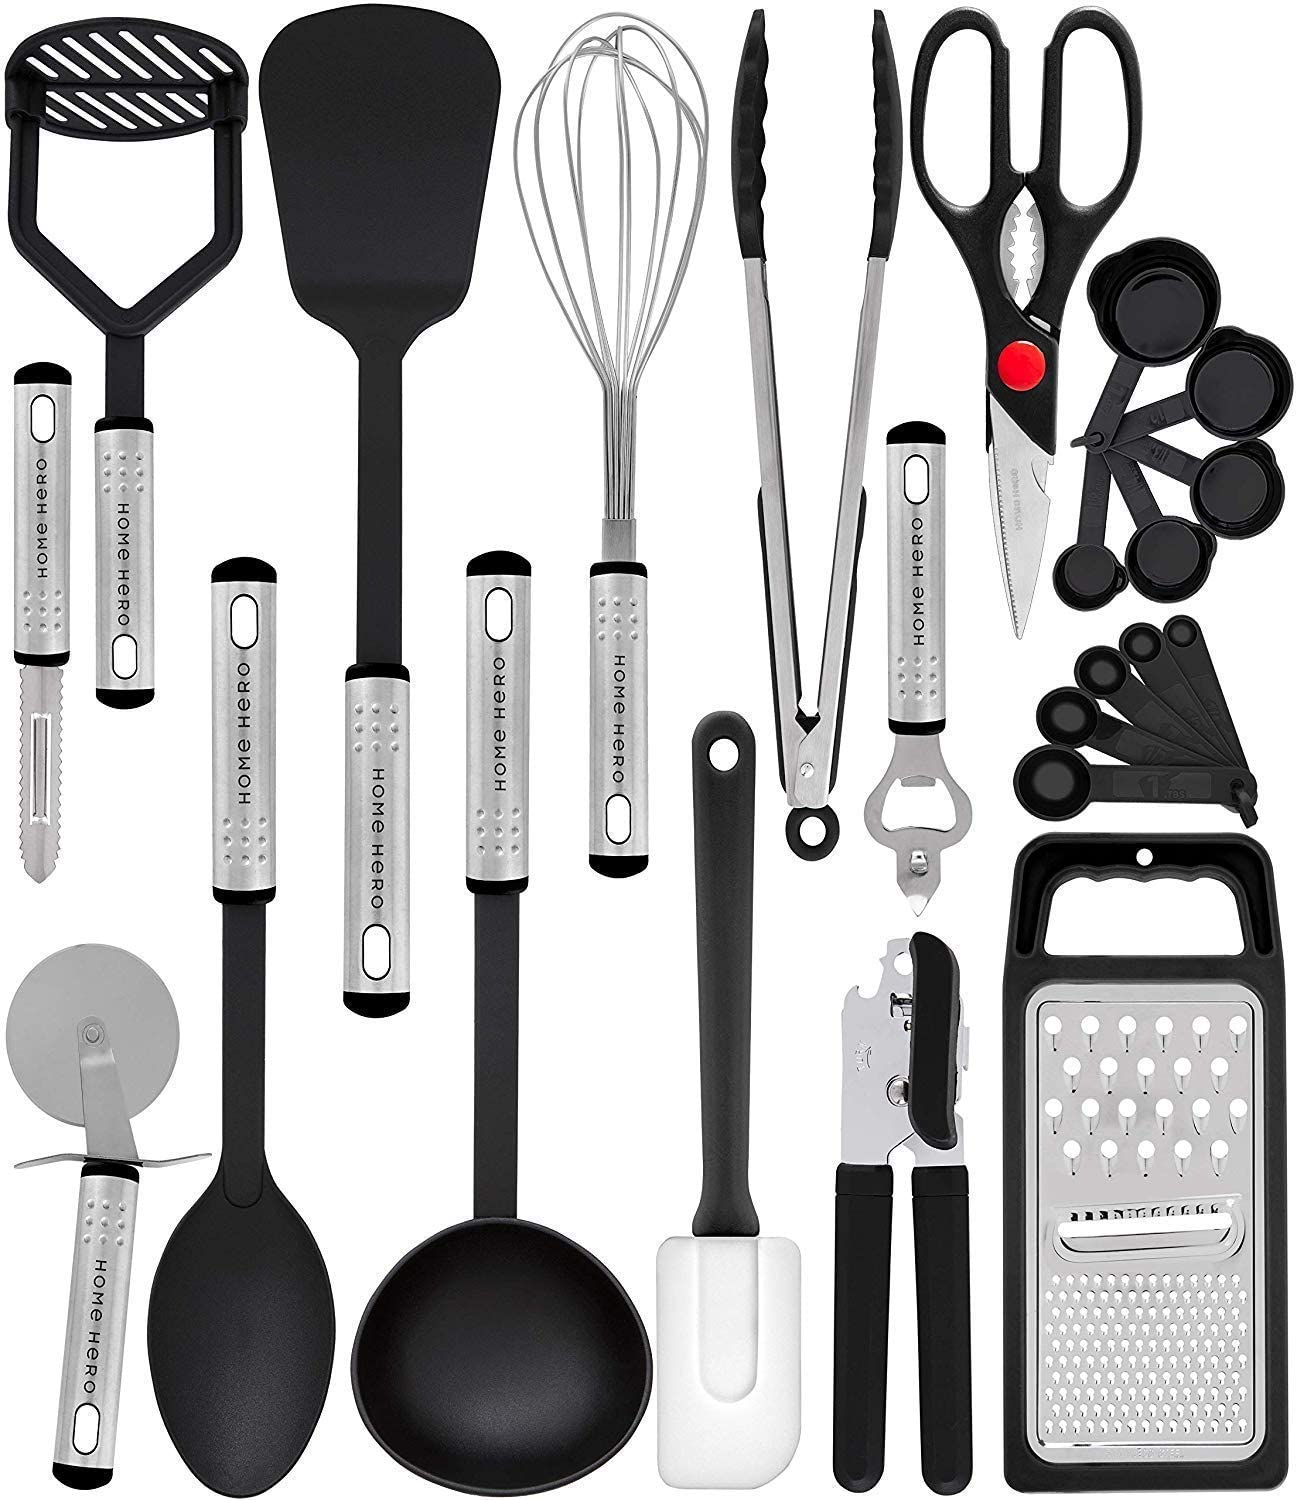 Home Hero Kitchen Utensil Set - 23 Nylon Cooking Utensils - Kitchen Utensils with Spatula